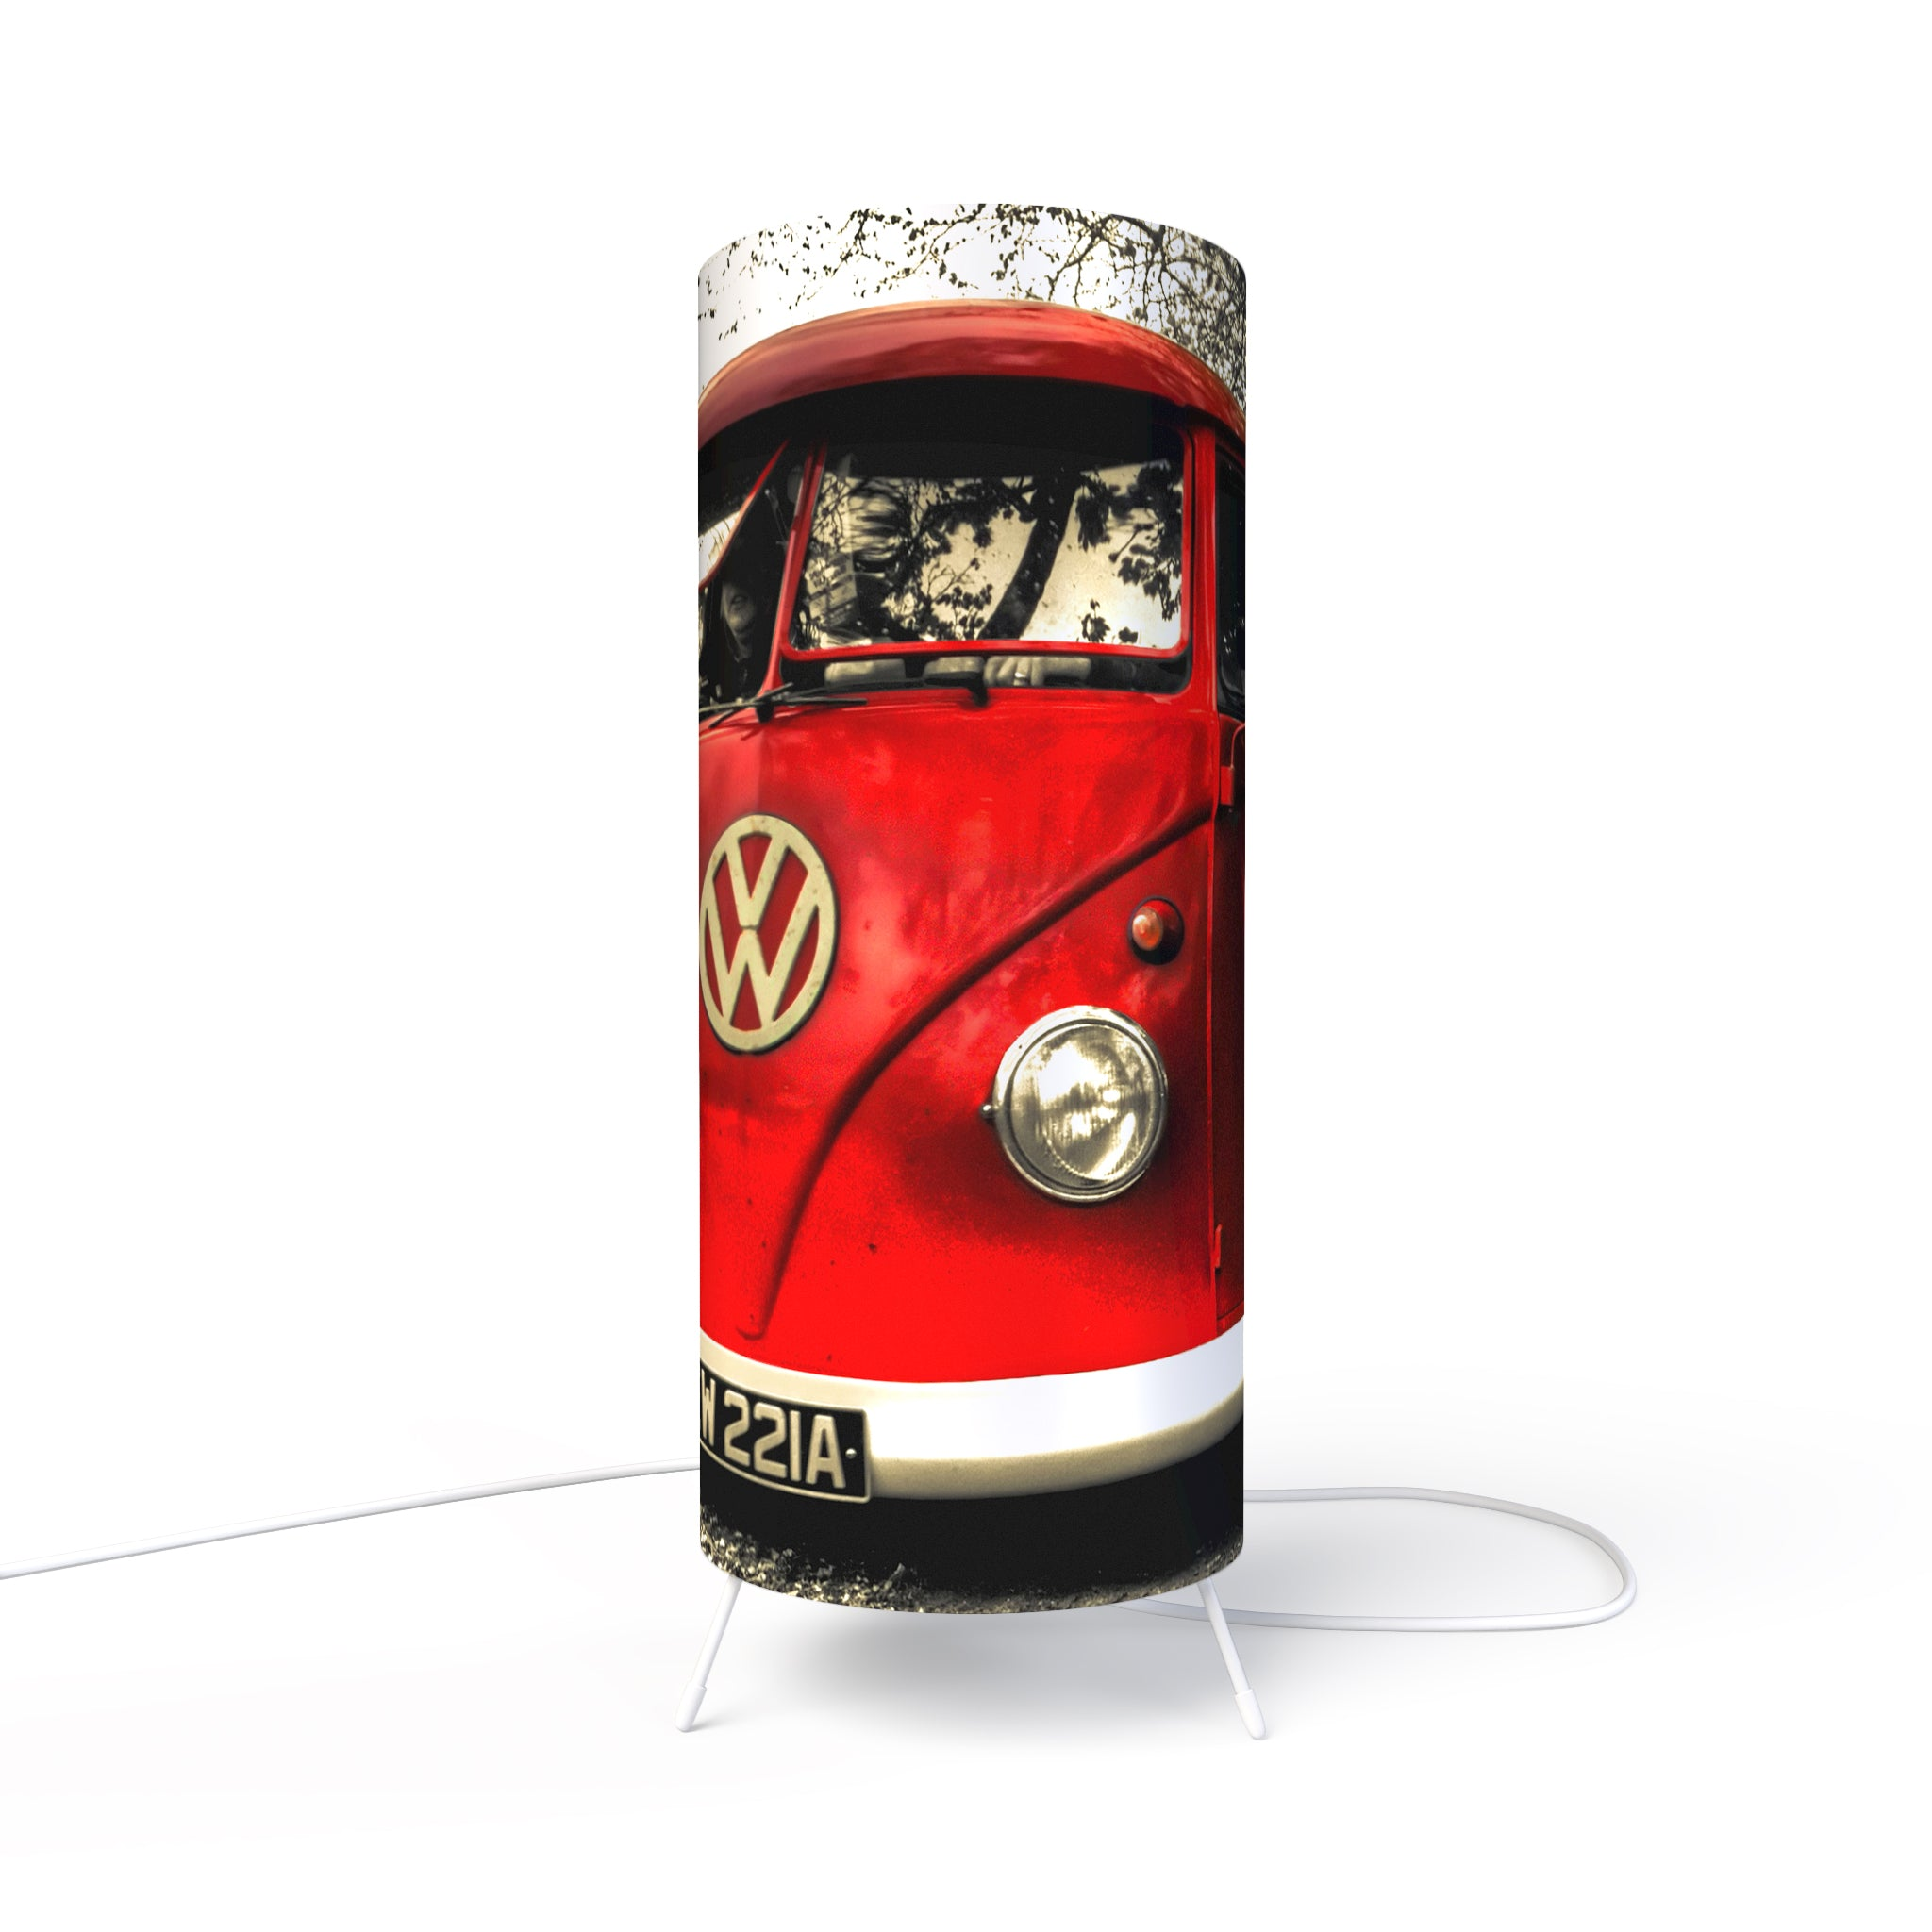 Fotbee table lamp with picture of Volkswagen by Steve Moss